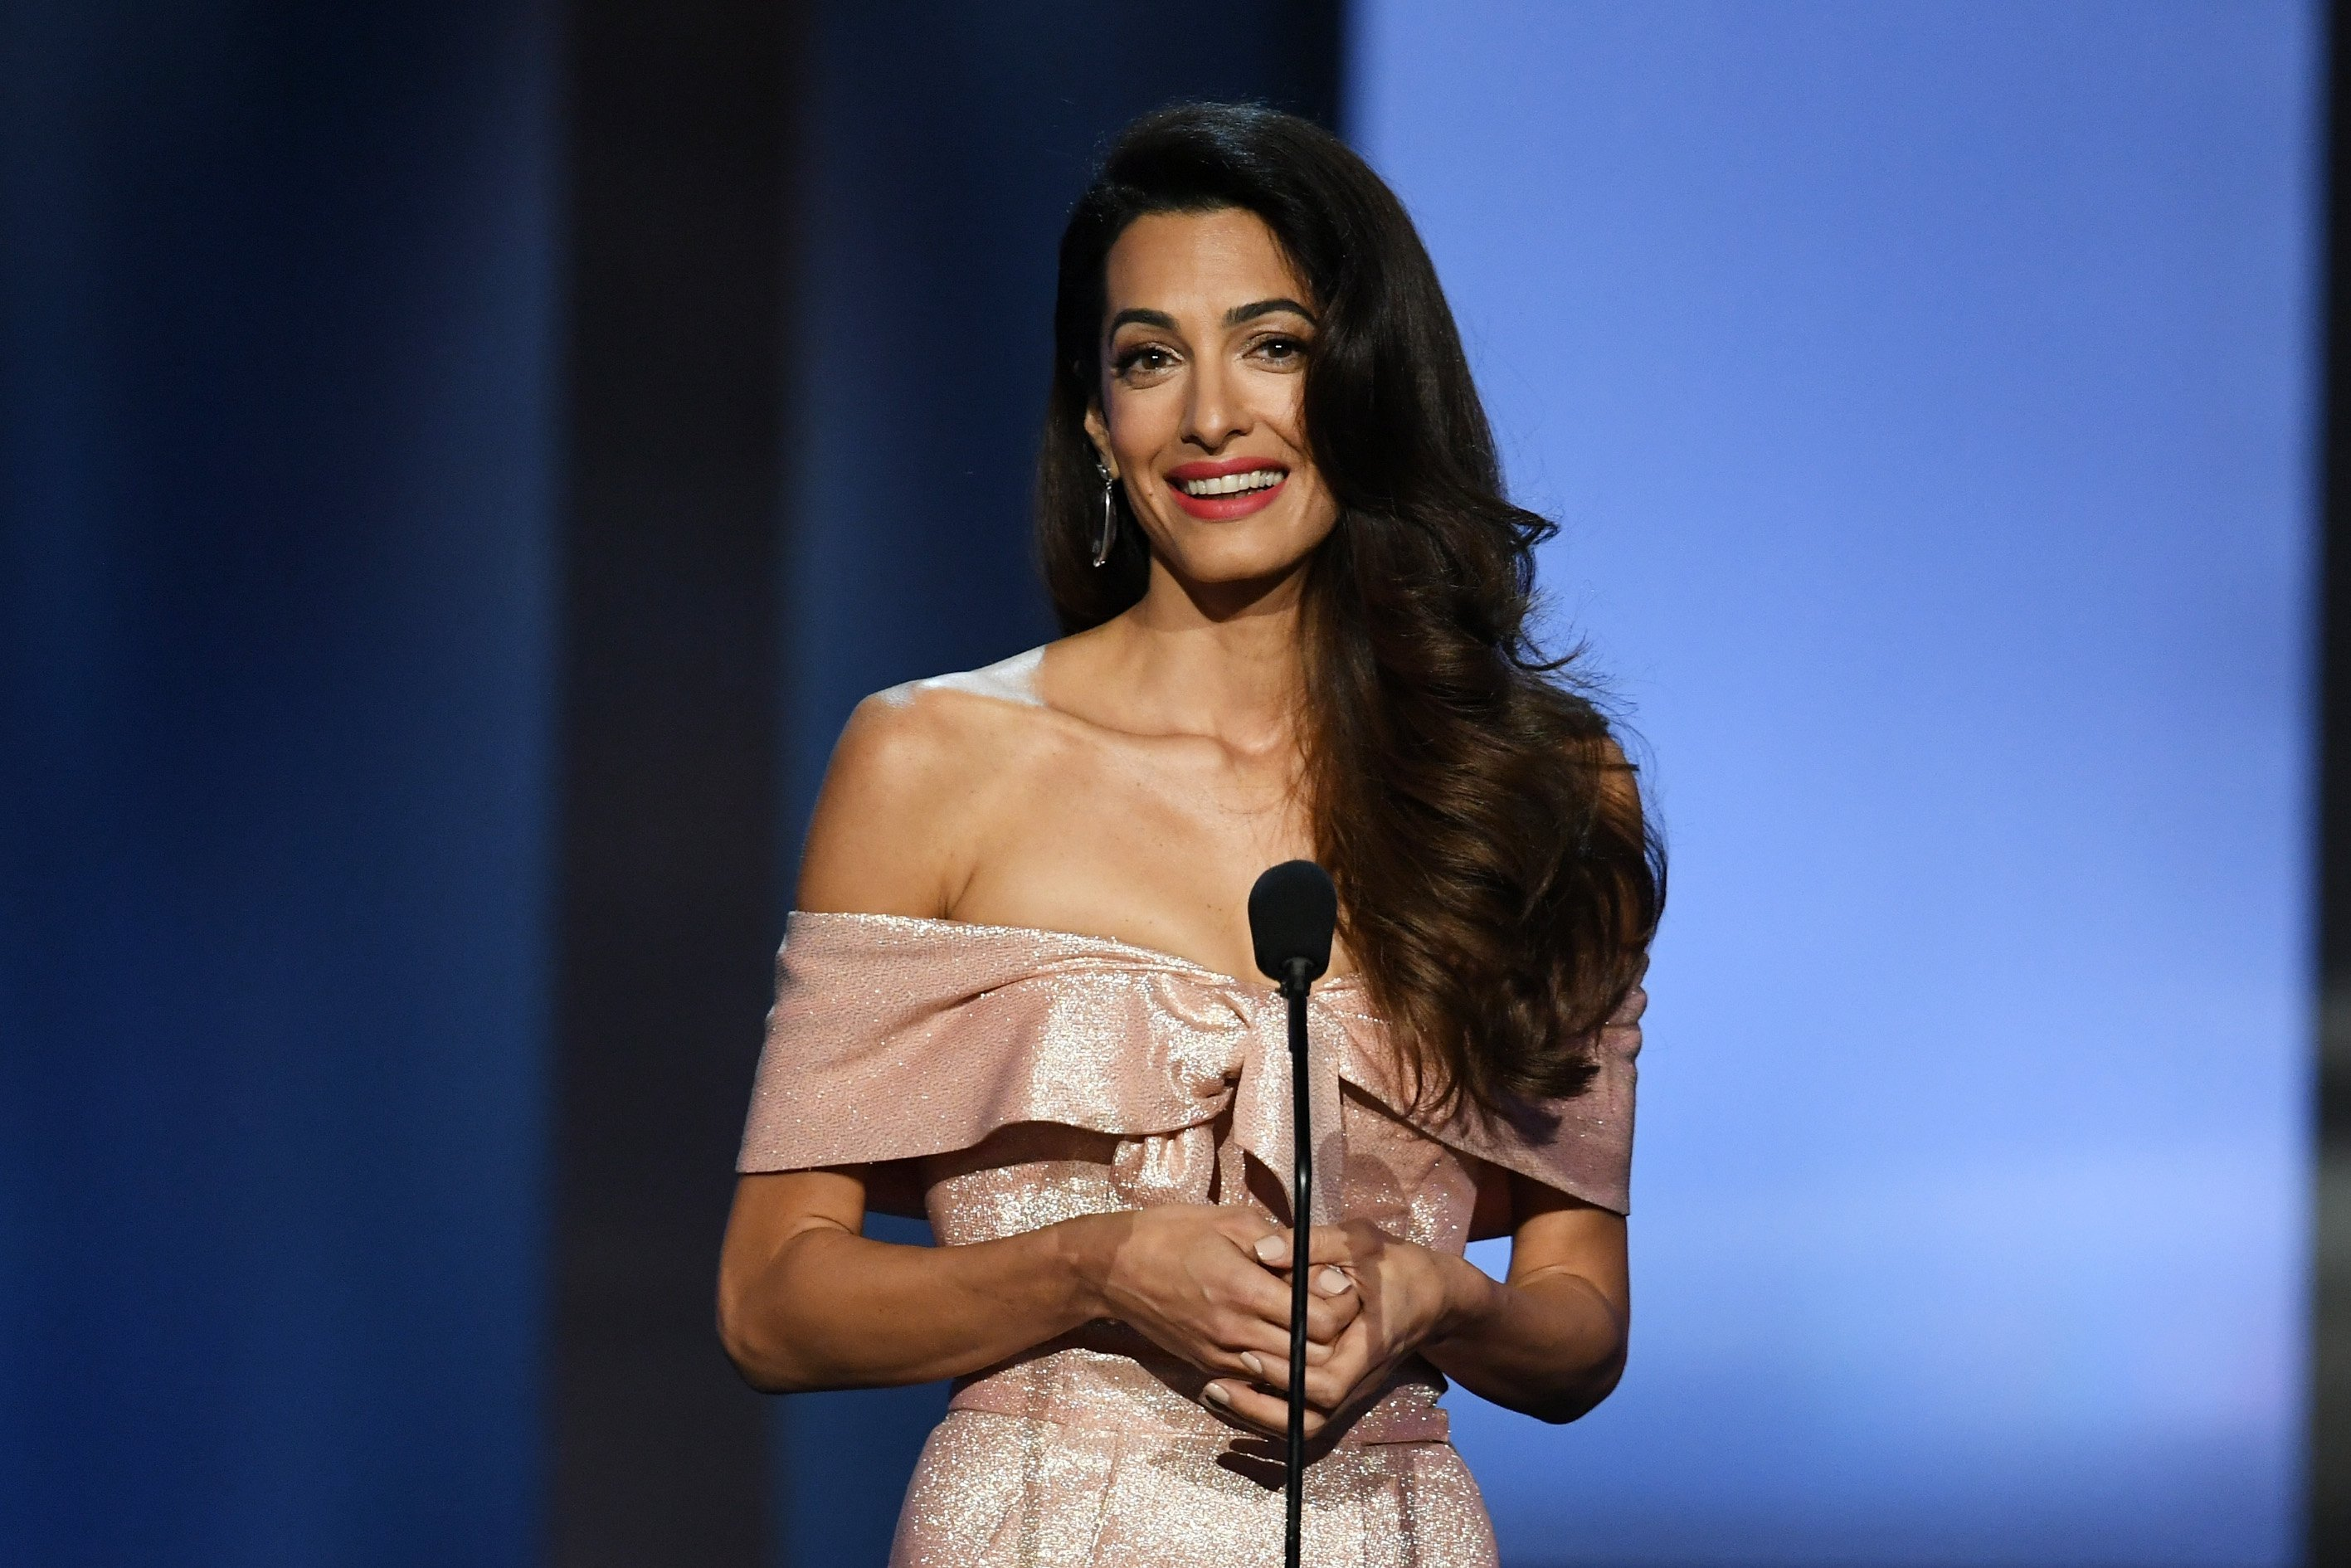 Amal Clooney at the American Film Institute's 46th Life Achievement Award Gala Tribute to George Clooney | Photo: Getty Images